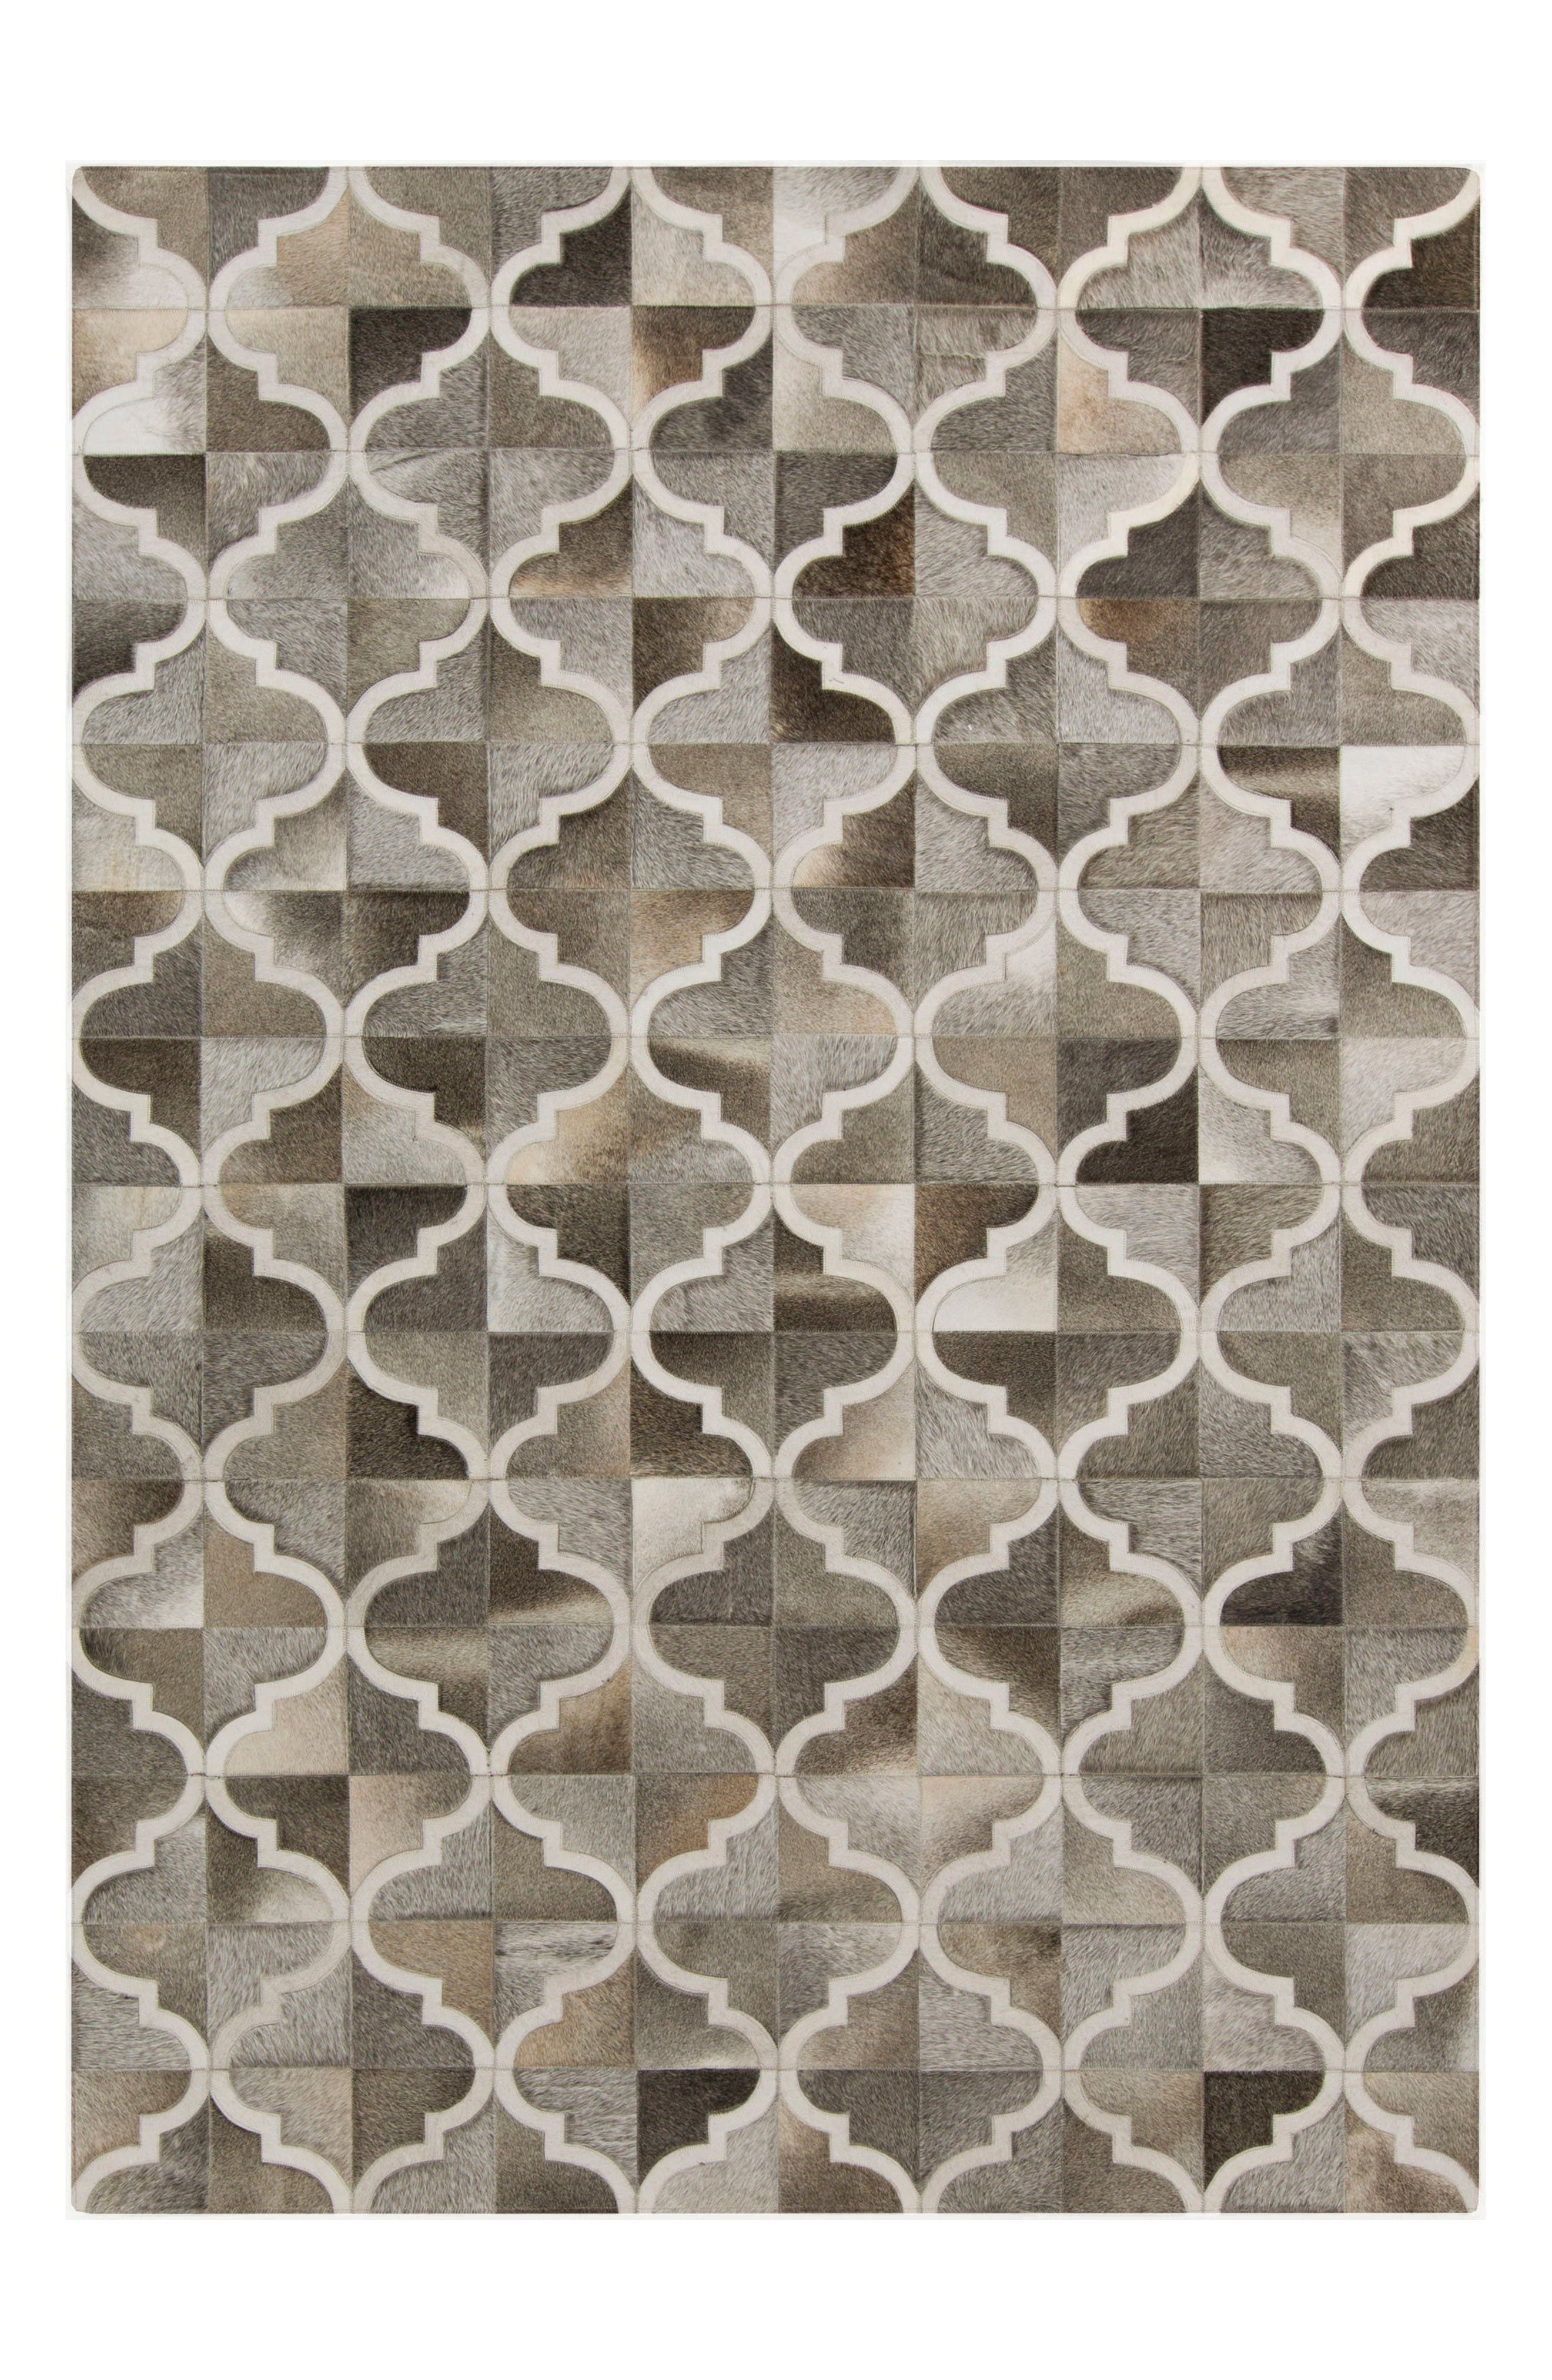 Outback Diamond Hand Stitched Calf Hair Rug,                         Main,                         color, Taupe